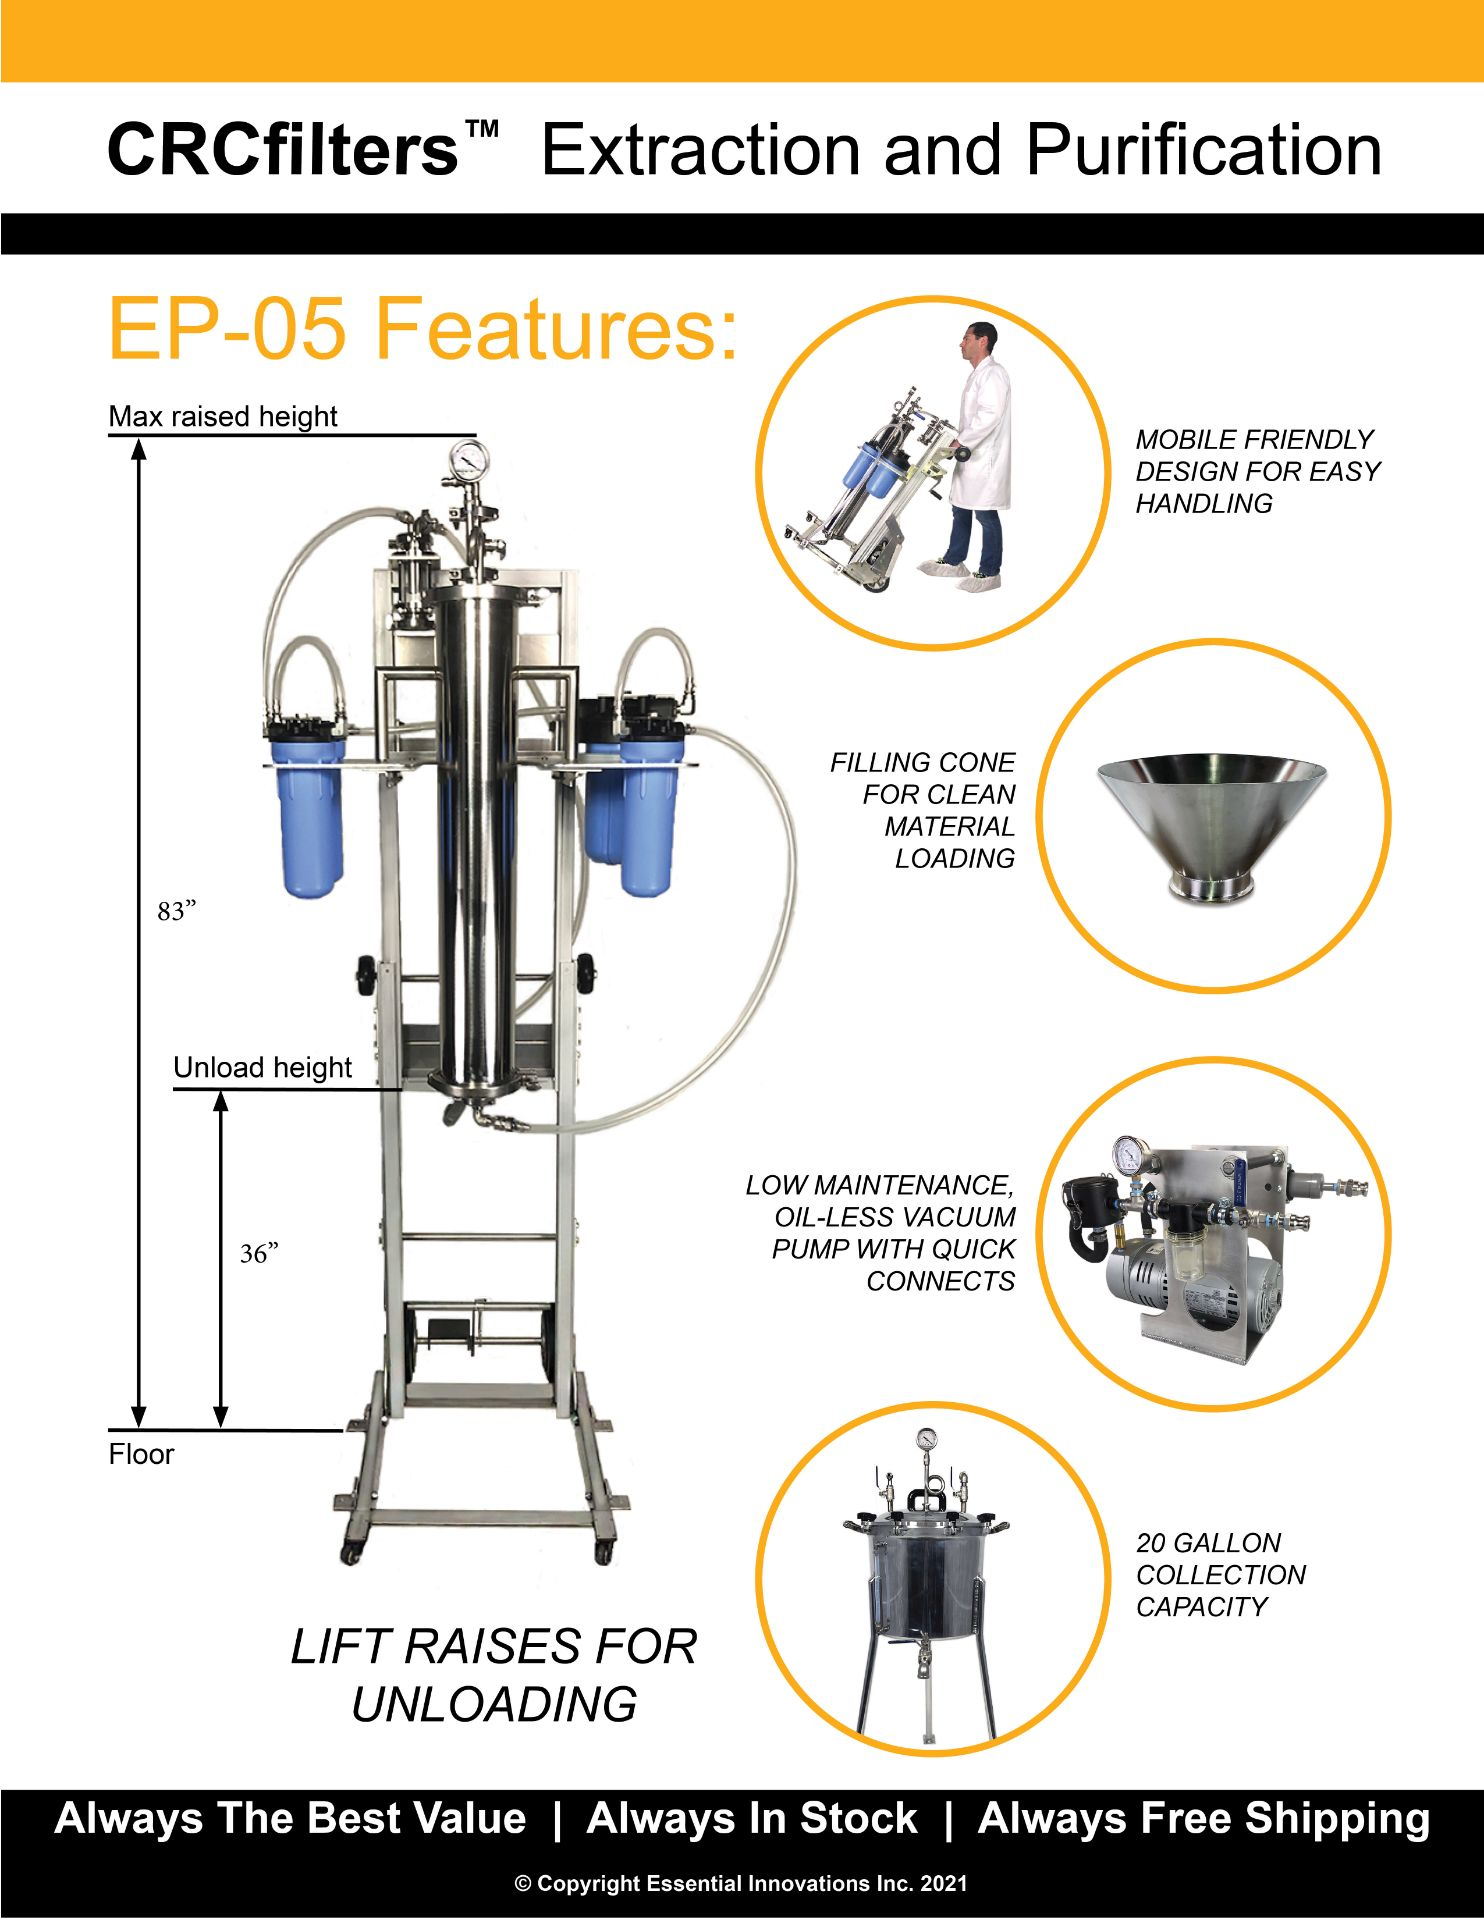 Used-CRCfilters Ethanol Extraction/Purification System. Model EP-05 w/ 20 Gal Collection Vessel - Image 6 of 6